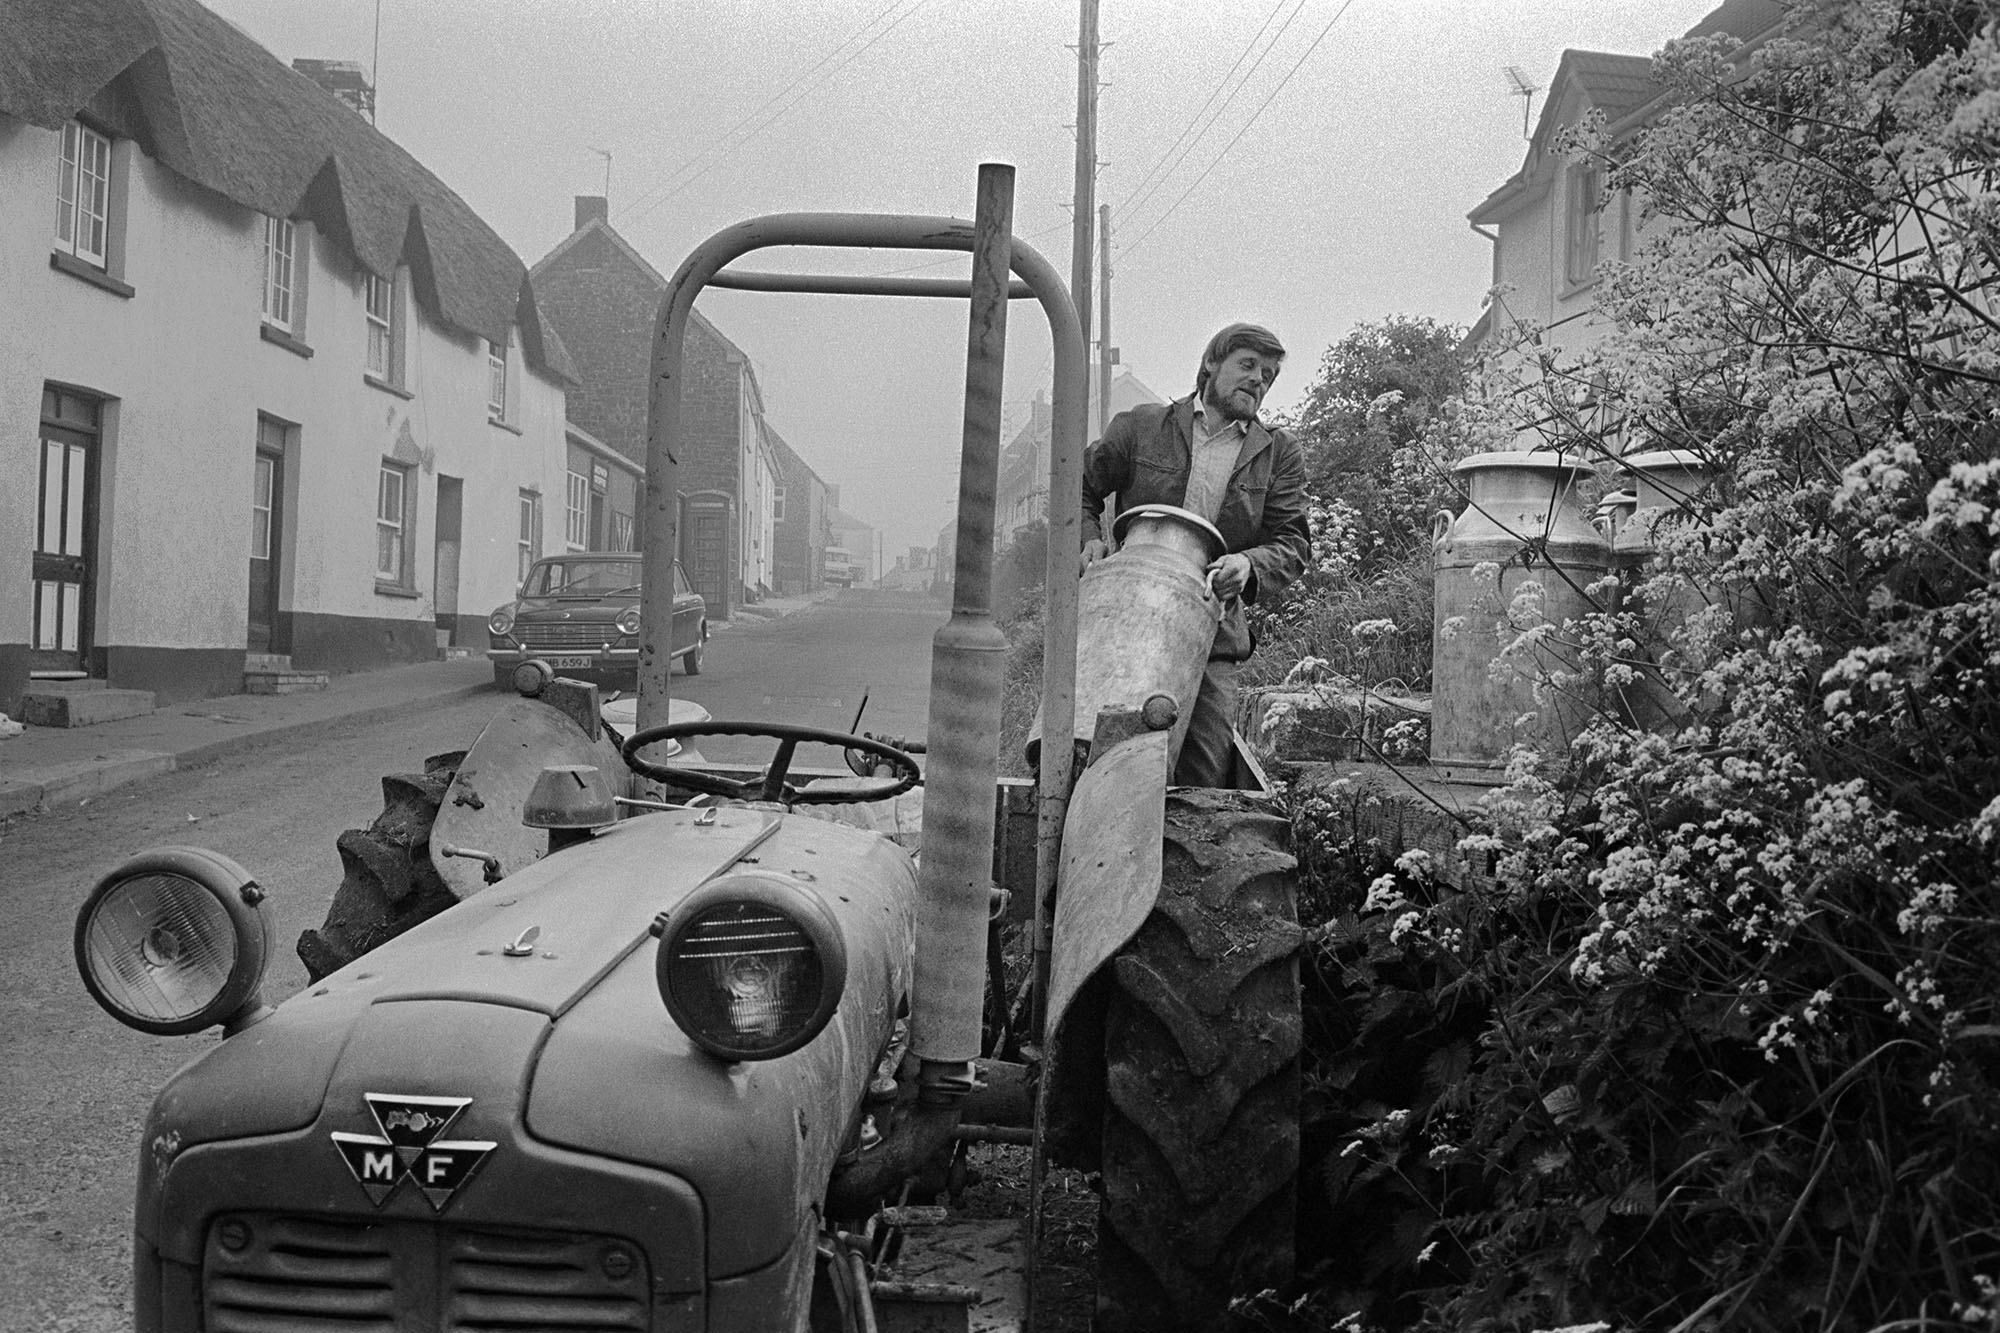 Farmer transferring milk churns to stand in village. <br /> [A man lifting milk churns from his tractor and link box onto a milk churn stand in the village of Sheepwash. Thatched cottages and a parked car are visible in the street.]